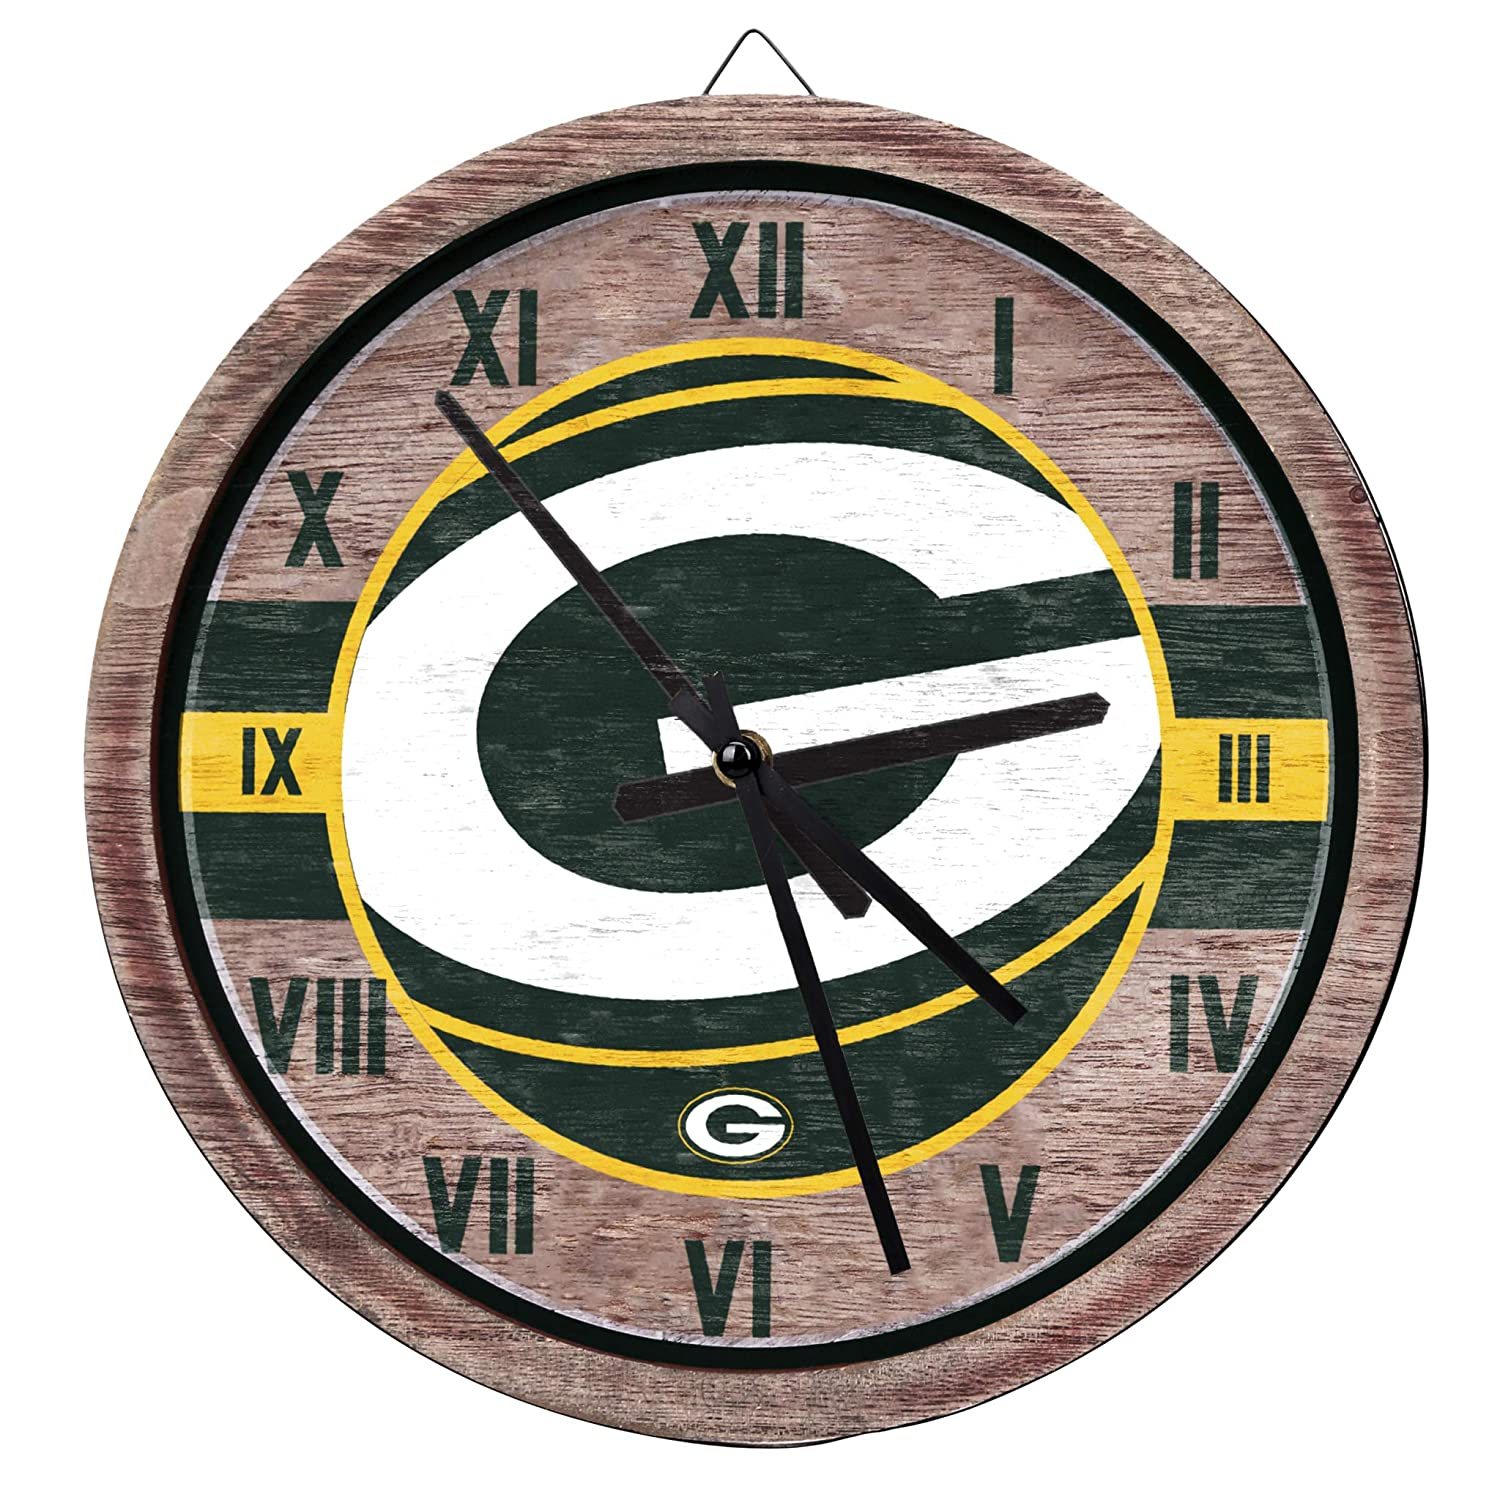 FOCO Barrel Wall Clock – Limited Edition Wooden Clock – Represent The NFL and Show Your Team Spirit with Officially Licensed Fan Decor